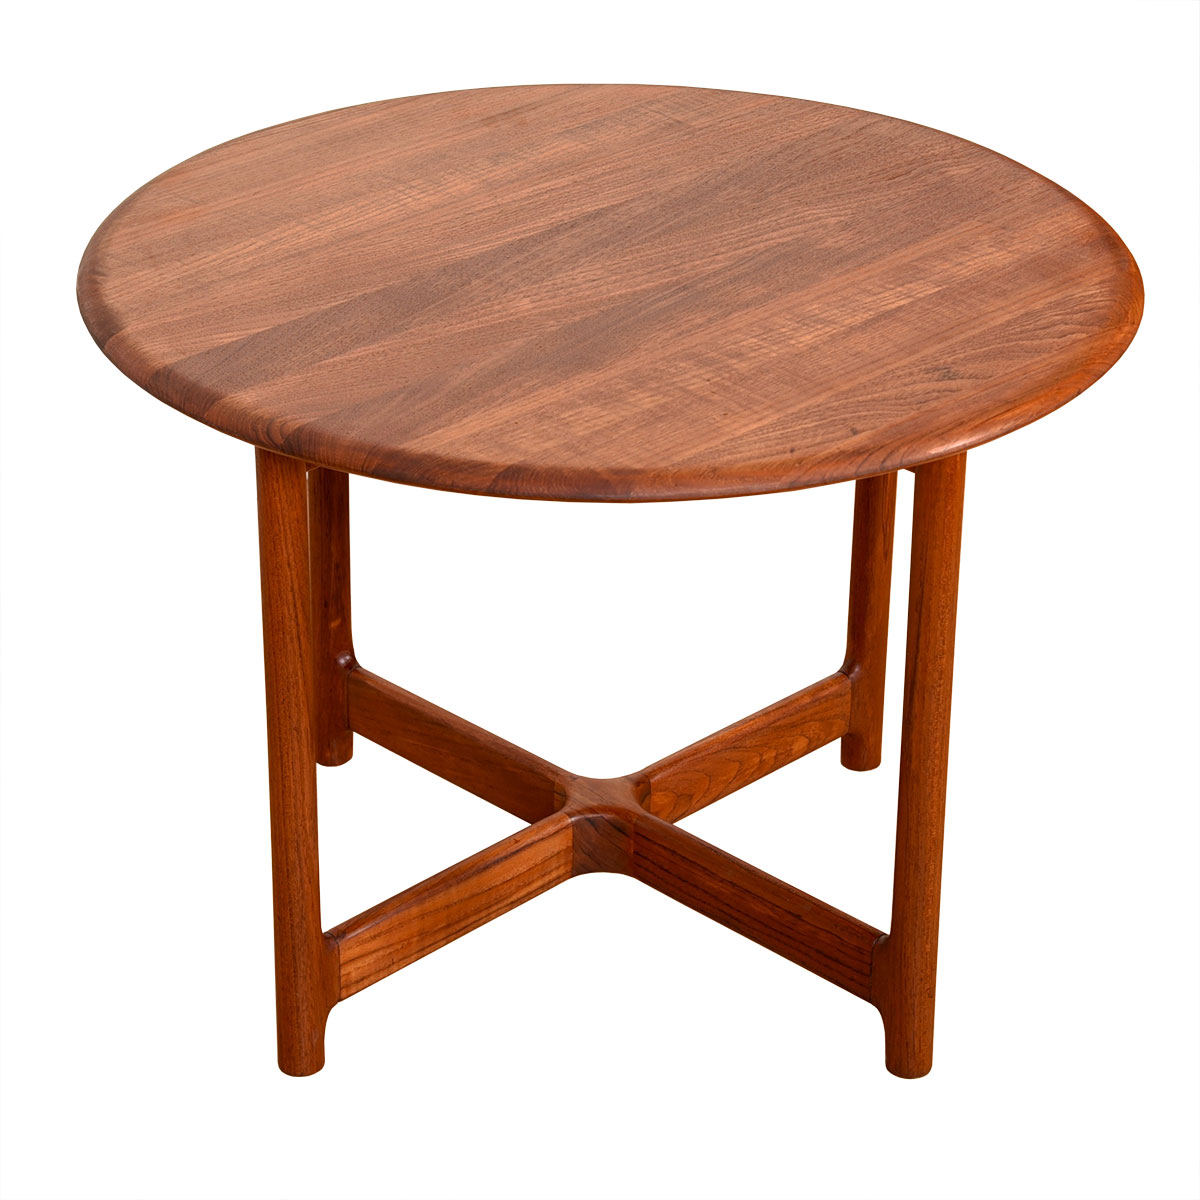 Danish Modern Solid-Teak Round Coffee   Accent Table